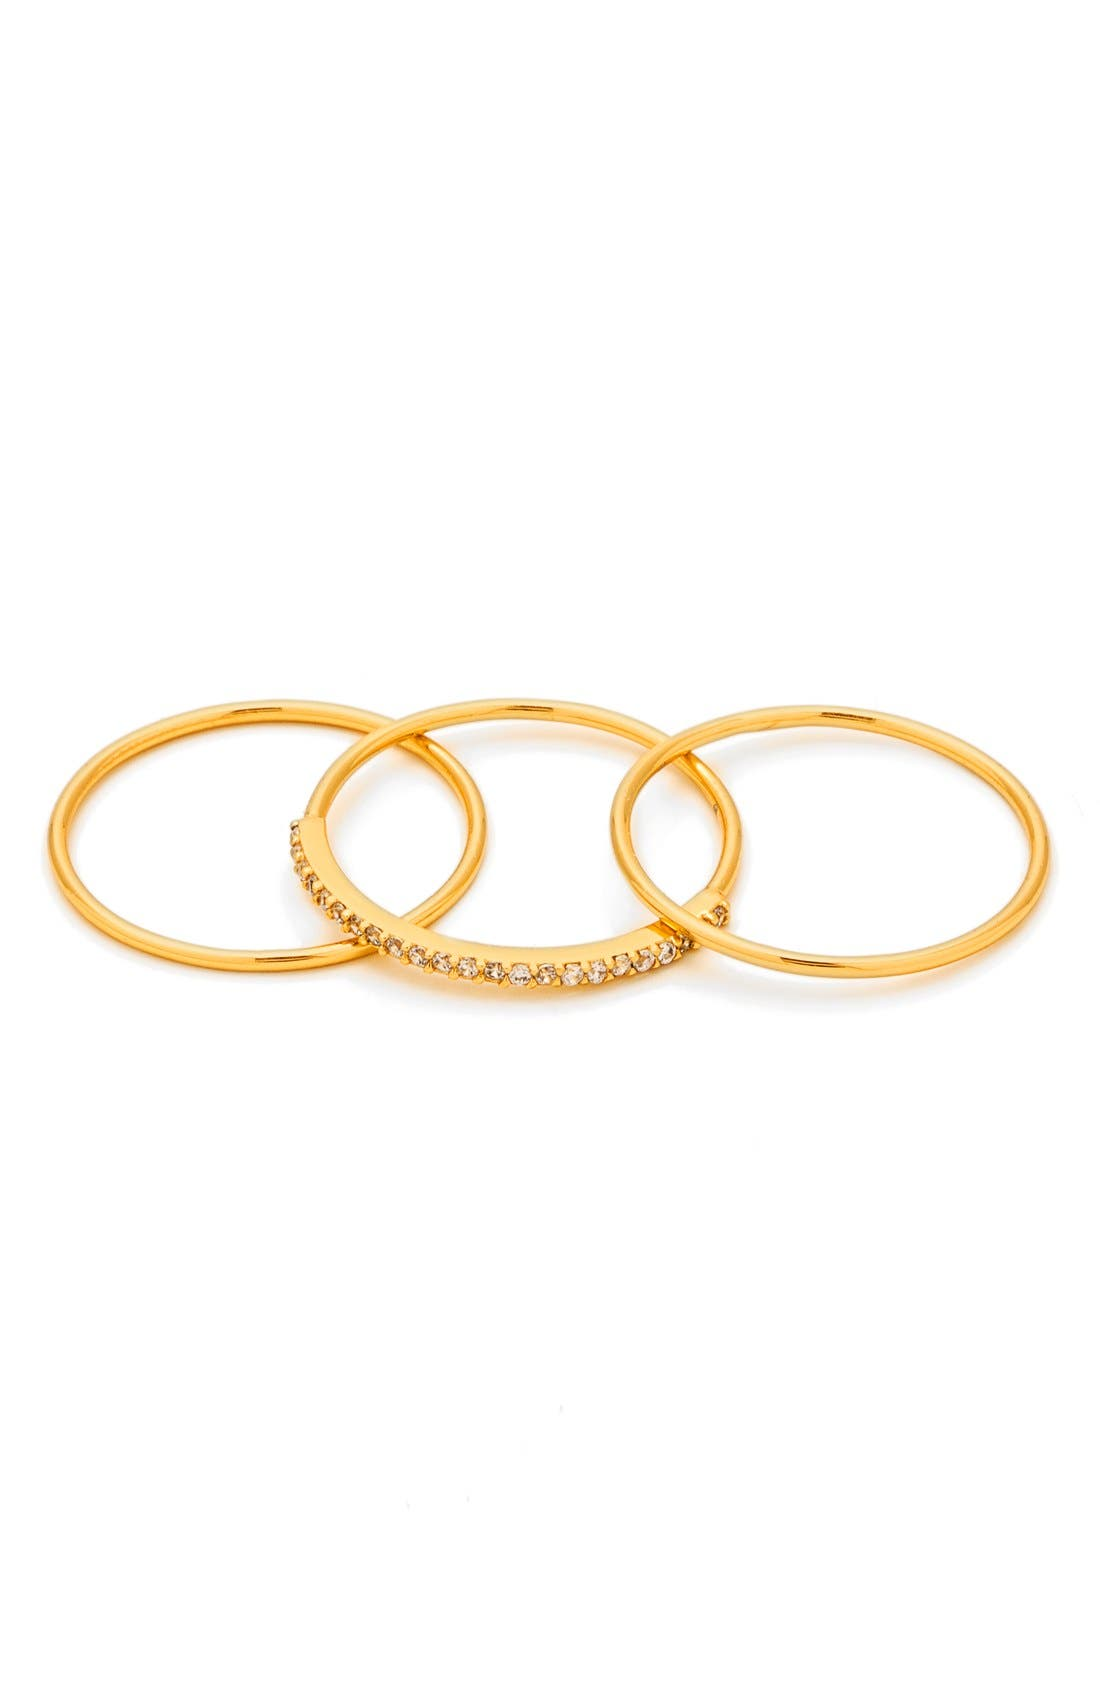 Shimmer Stackable Set of 3 Band Rings,                         Main,                         color, Gold